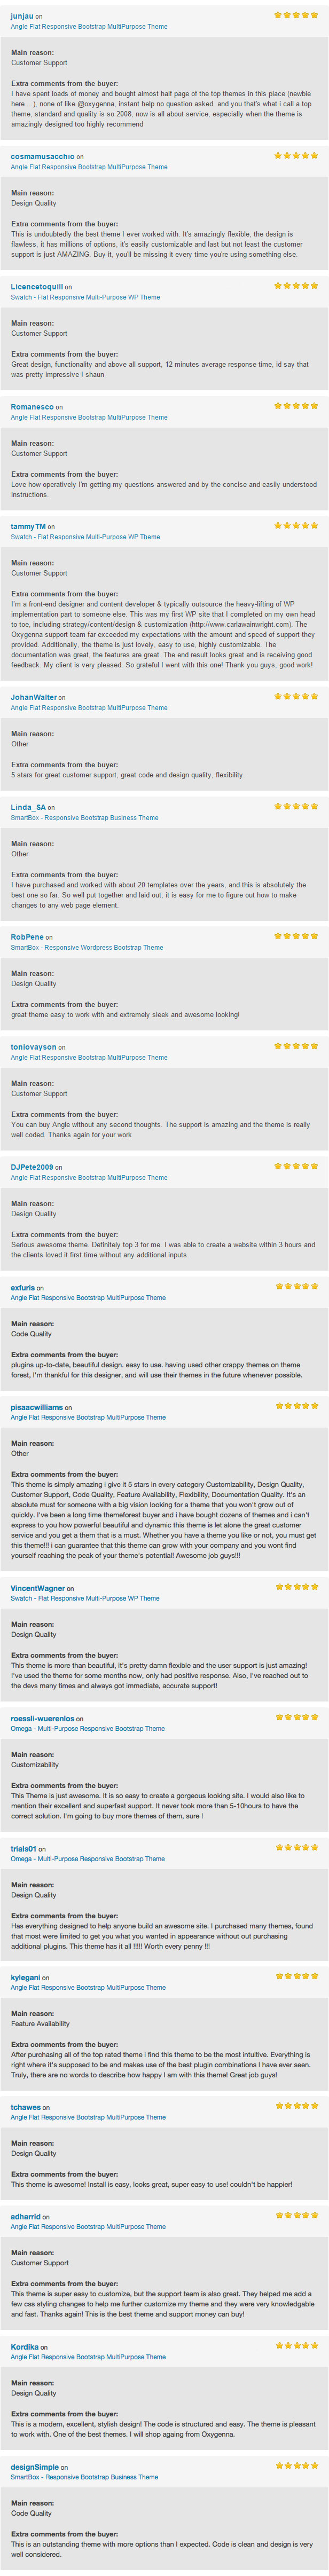 comment list - Angle Flat Responsive Bootstrap MultiPurpose Theme